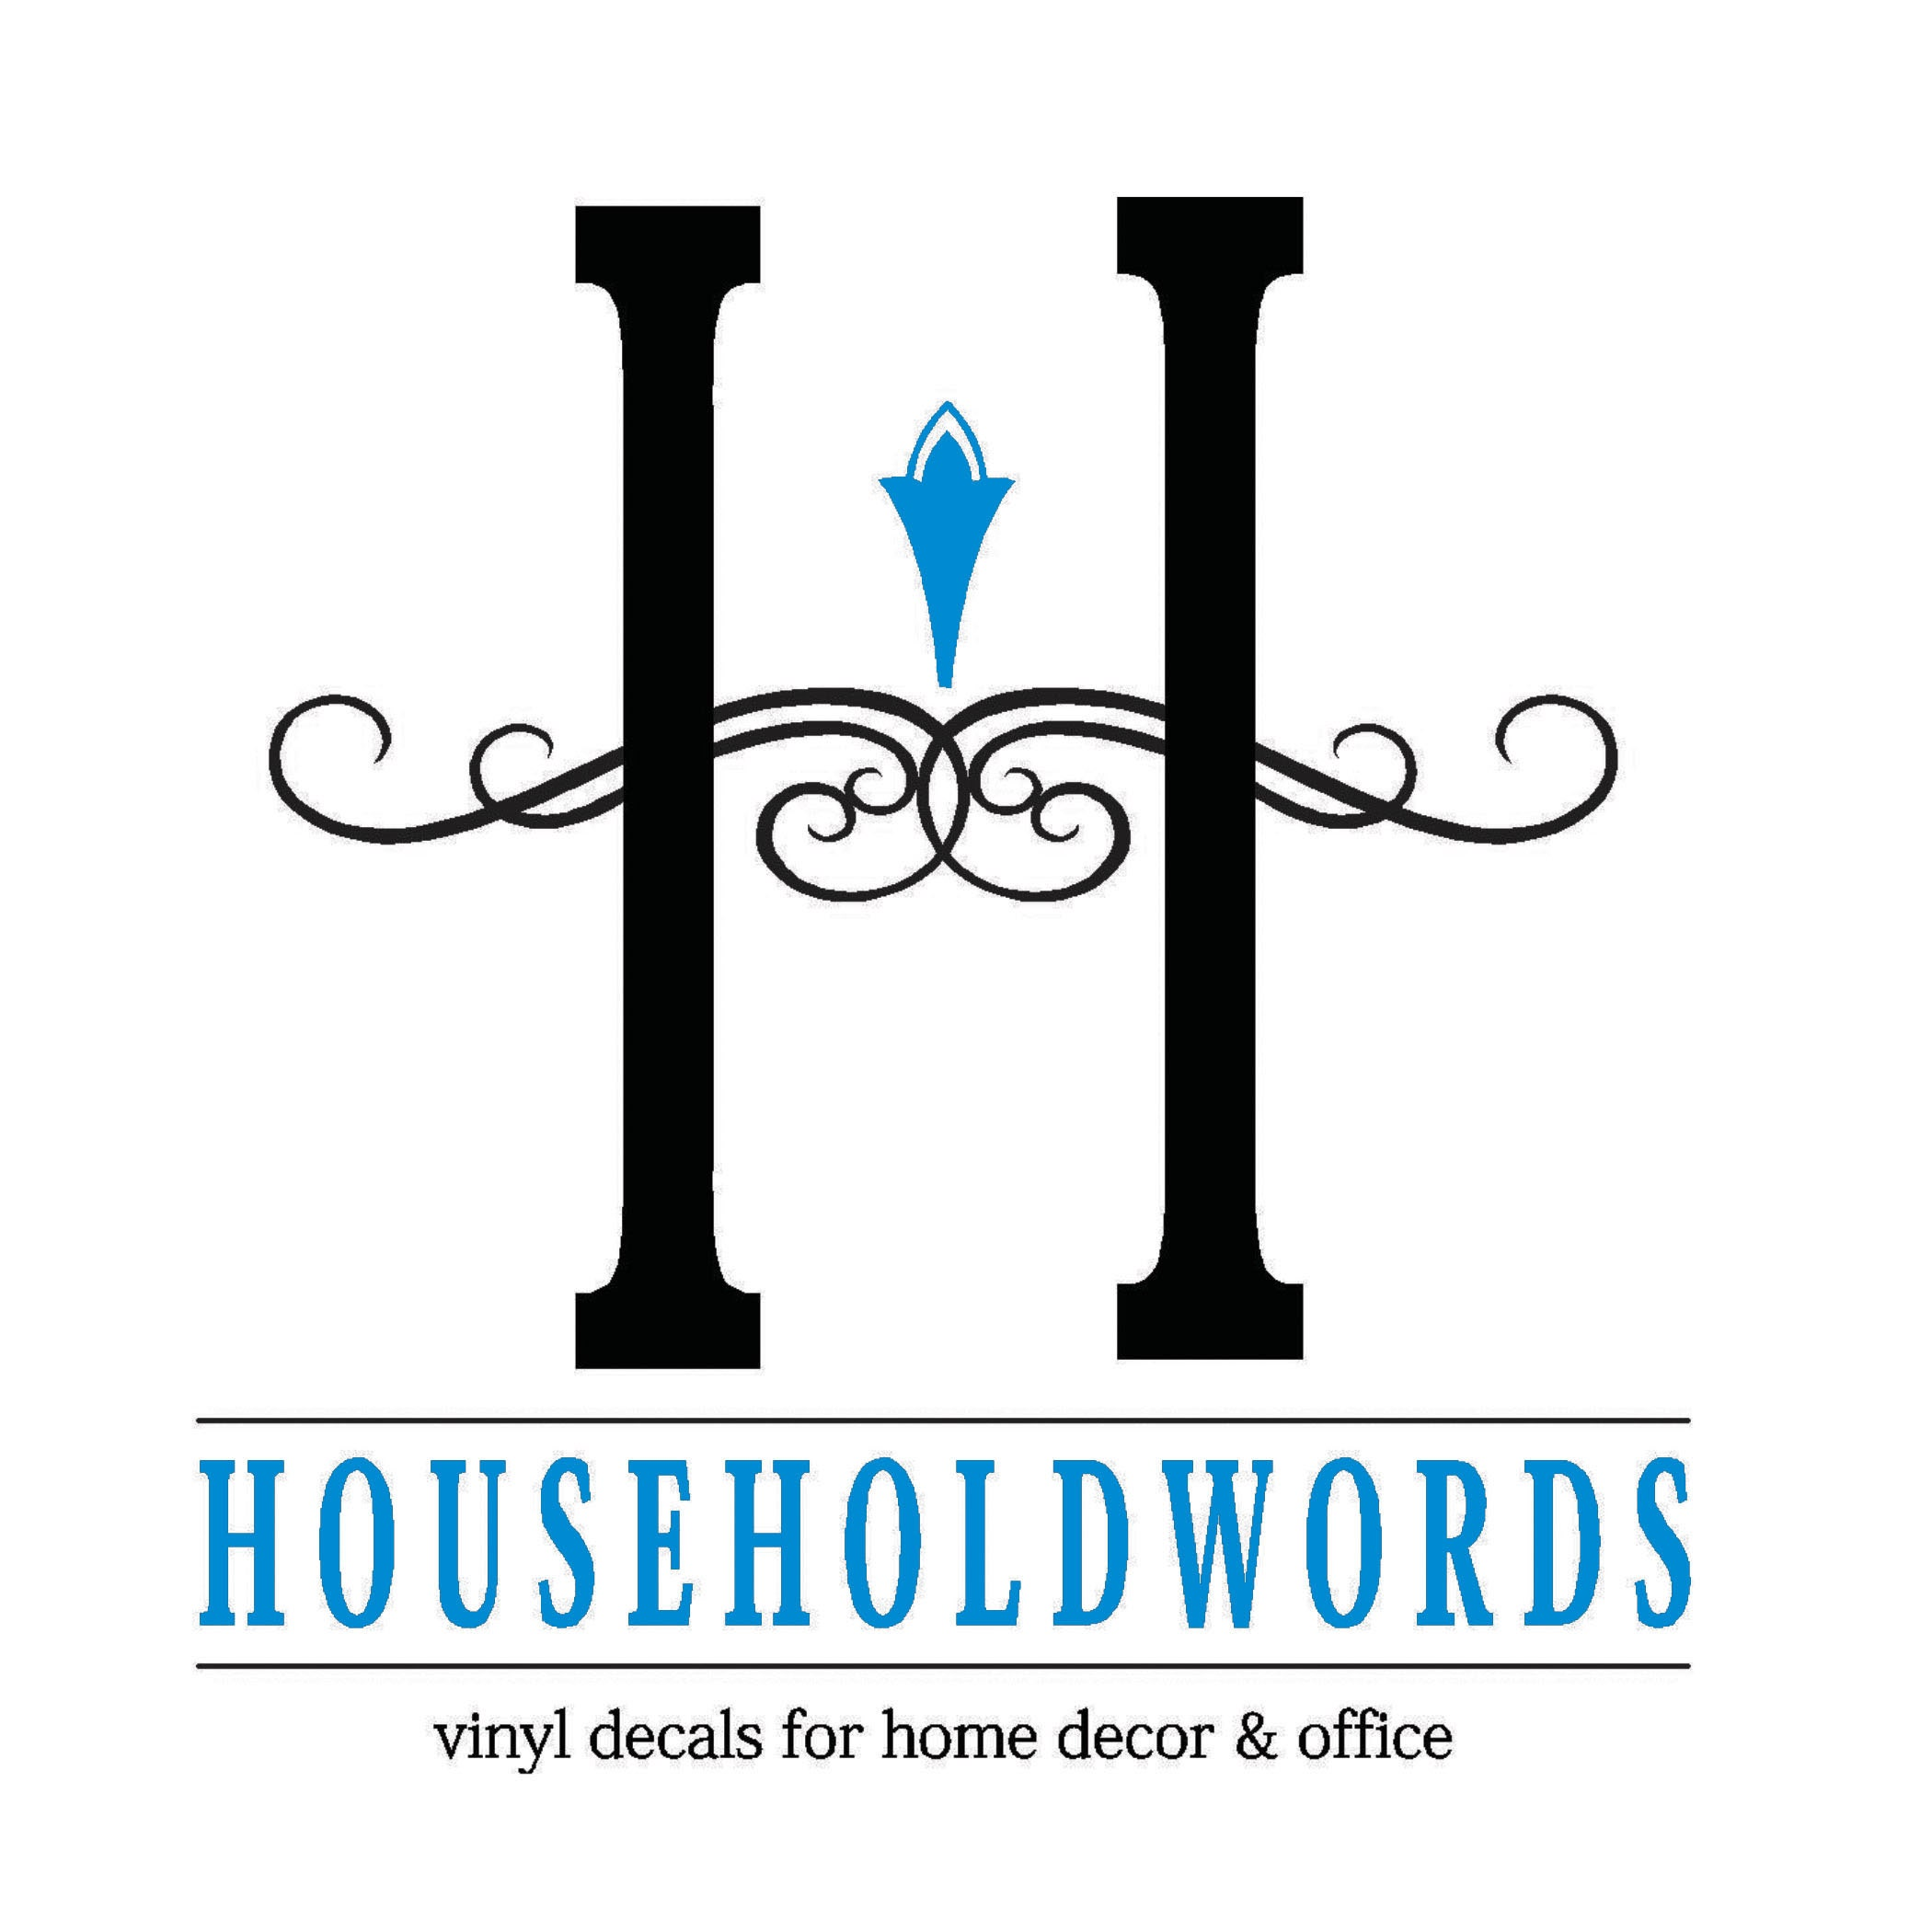 Removable Vinyl Wall Decals  Words For Home By HouseHoldWords - Custom vinyl stickers australia   the advantages